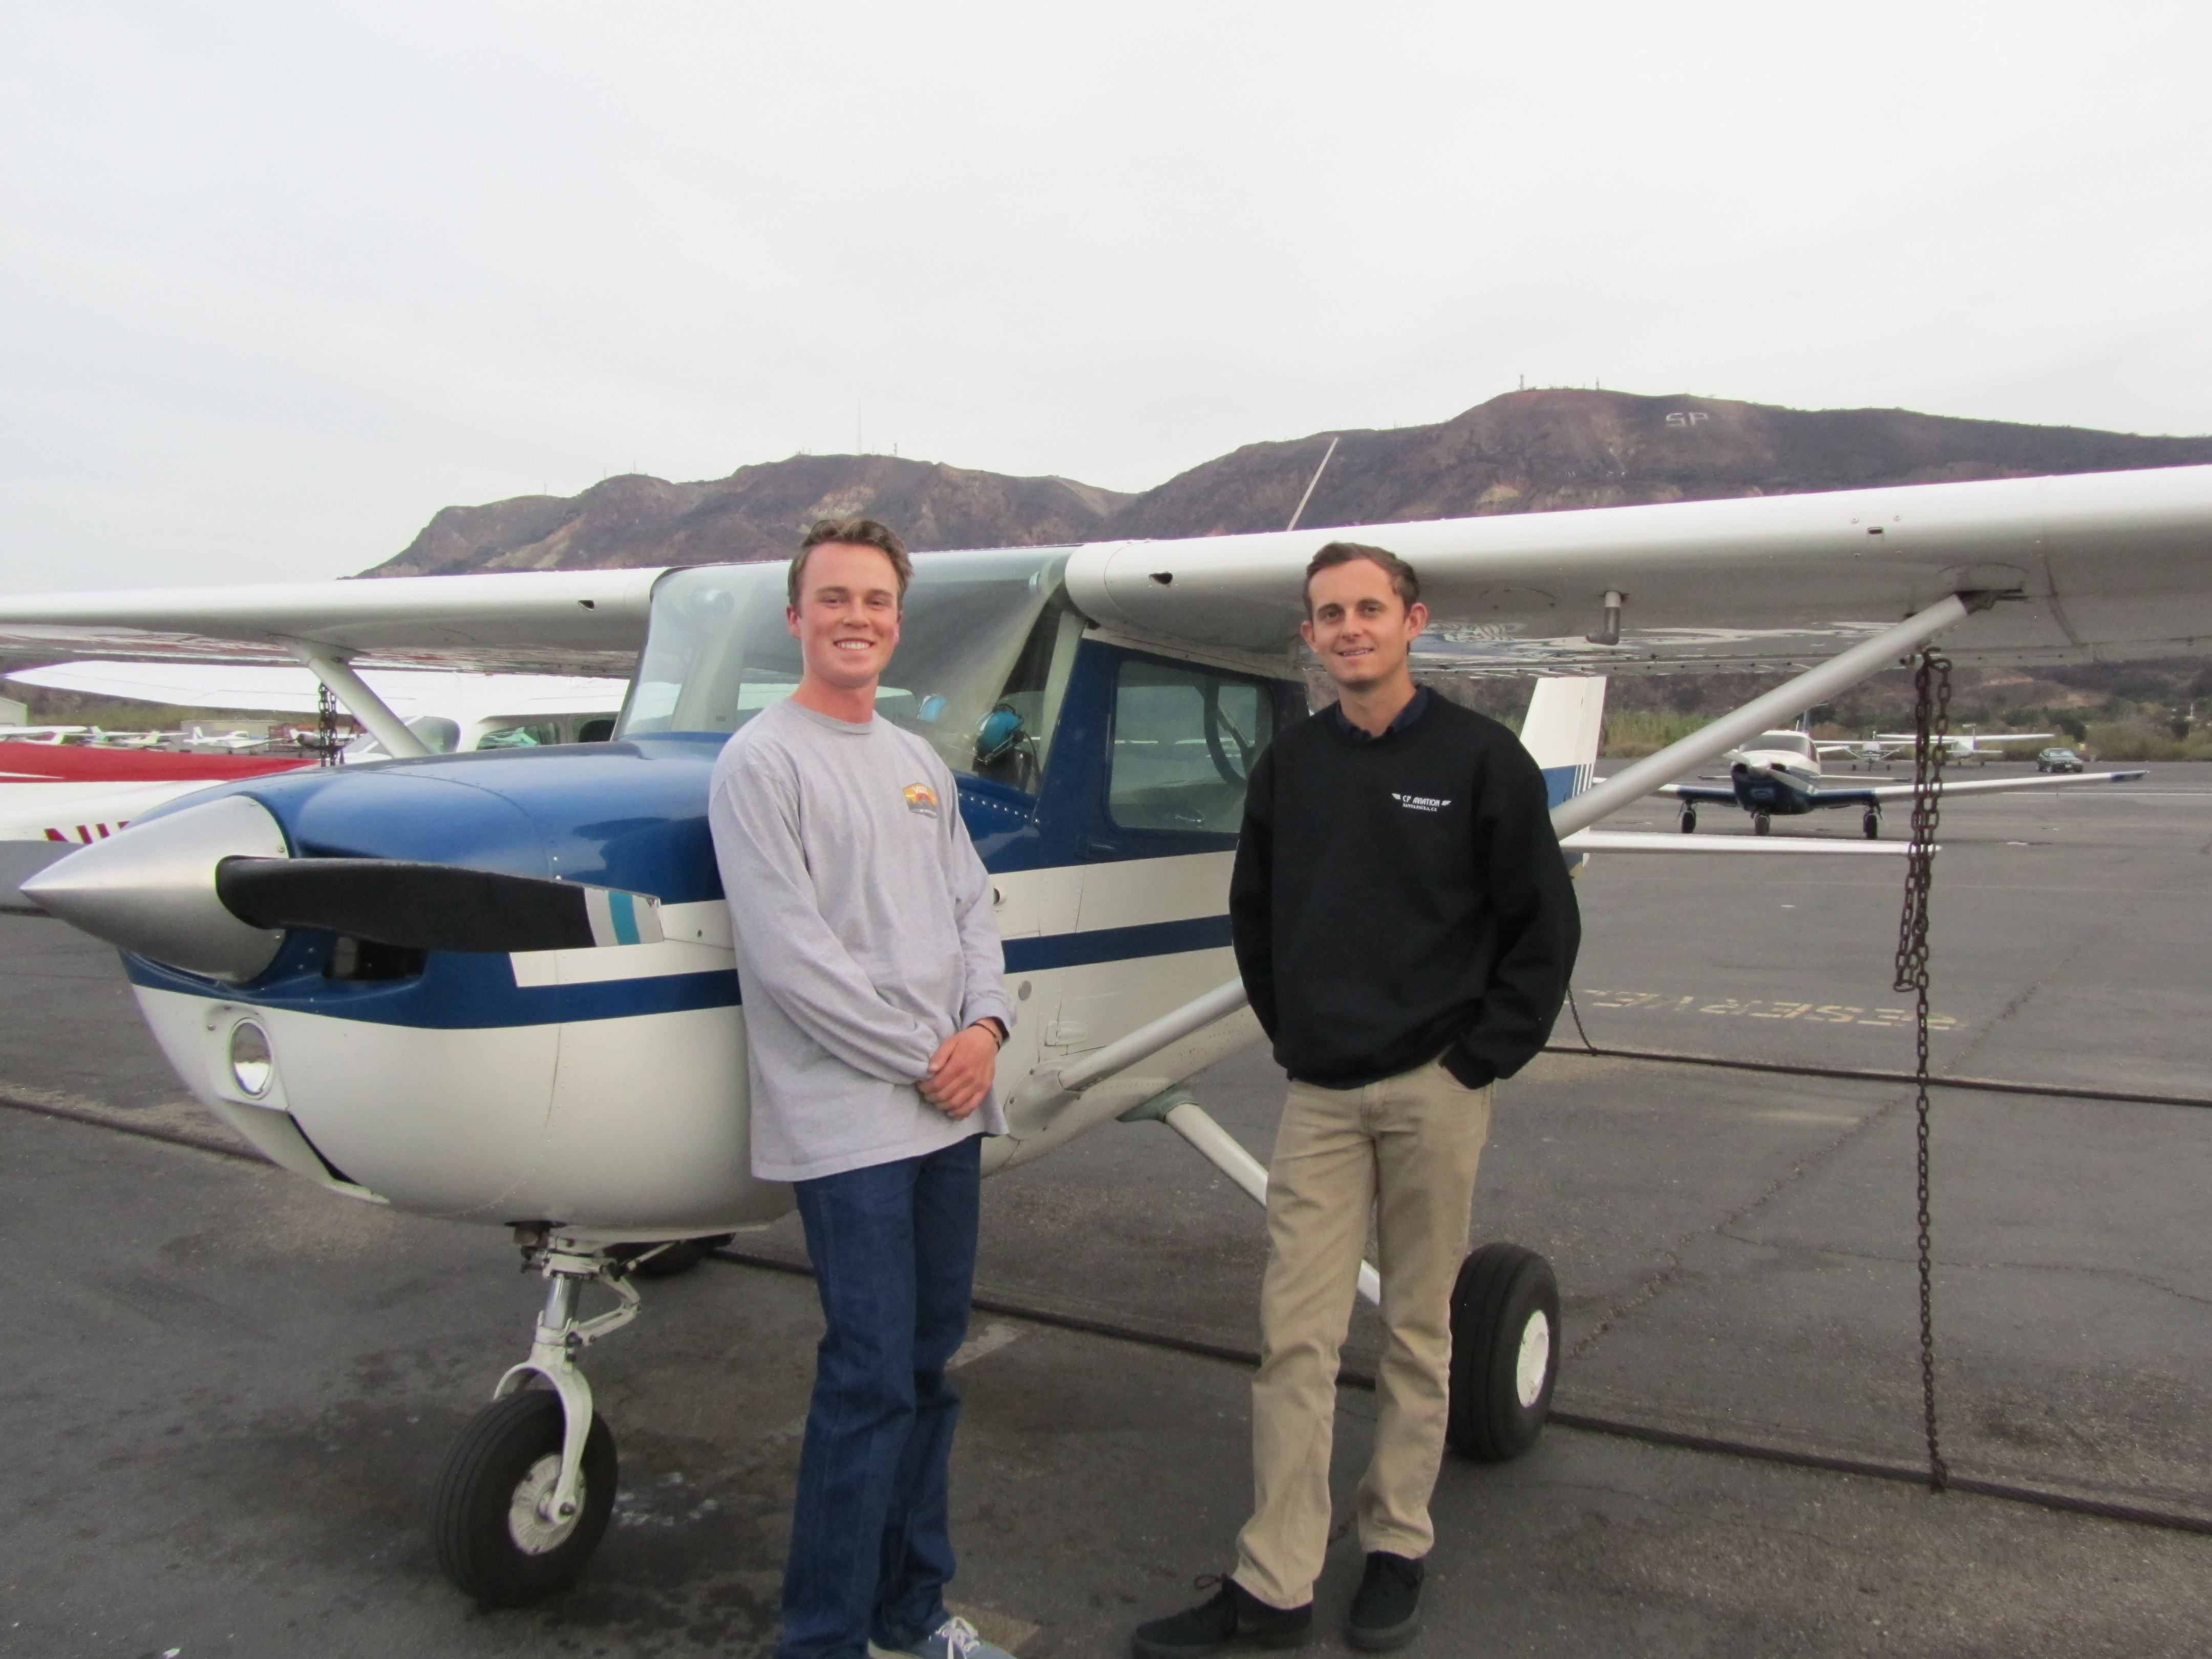 First Solo - Chad Nealon!